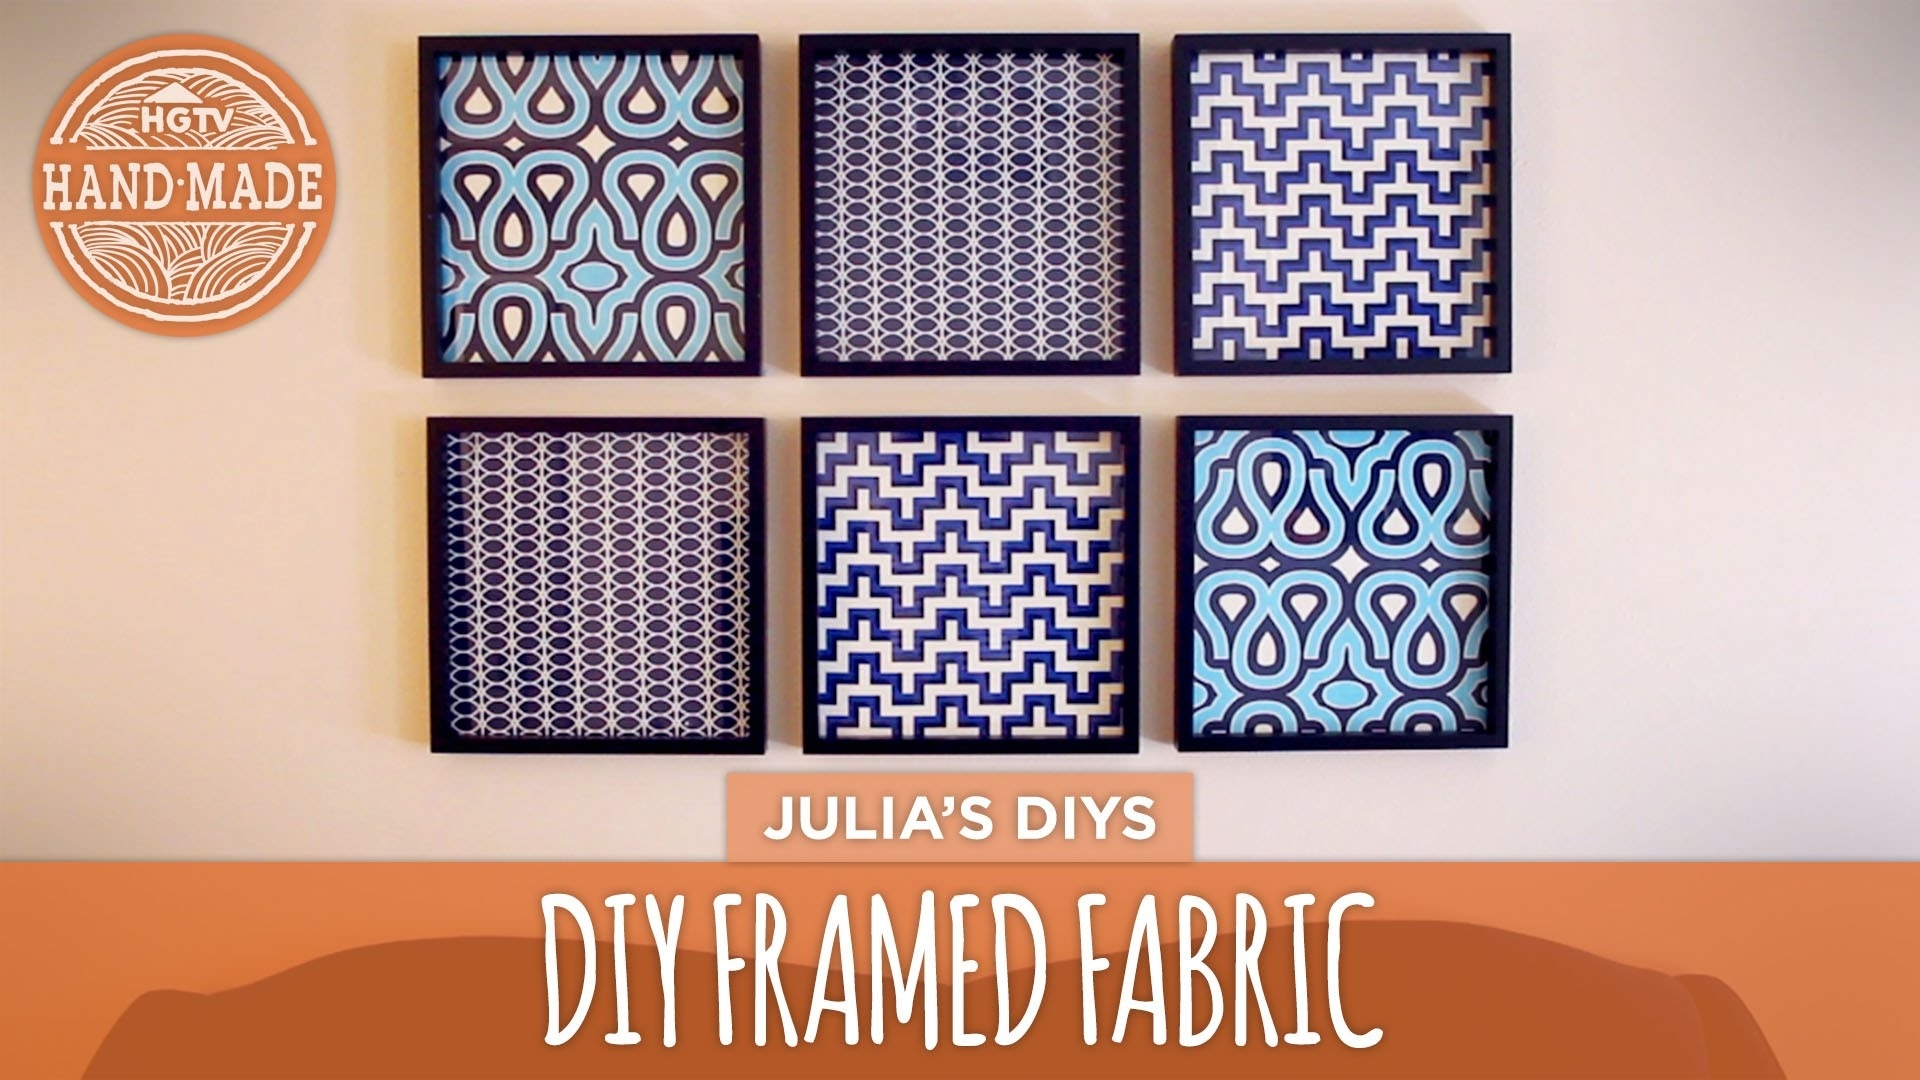 Diy Framed Fabric Gallery Wall – Hgtv Handmade – Youtube With Regard To Most Popular Cloth Fabric Wall Art (View 6 of 15)